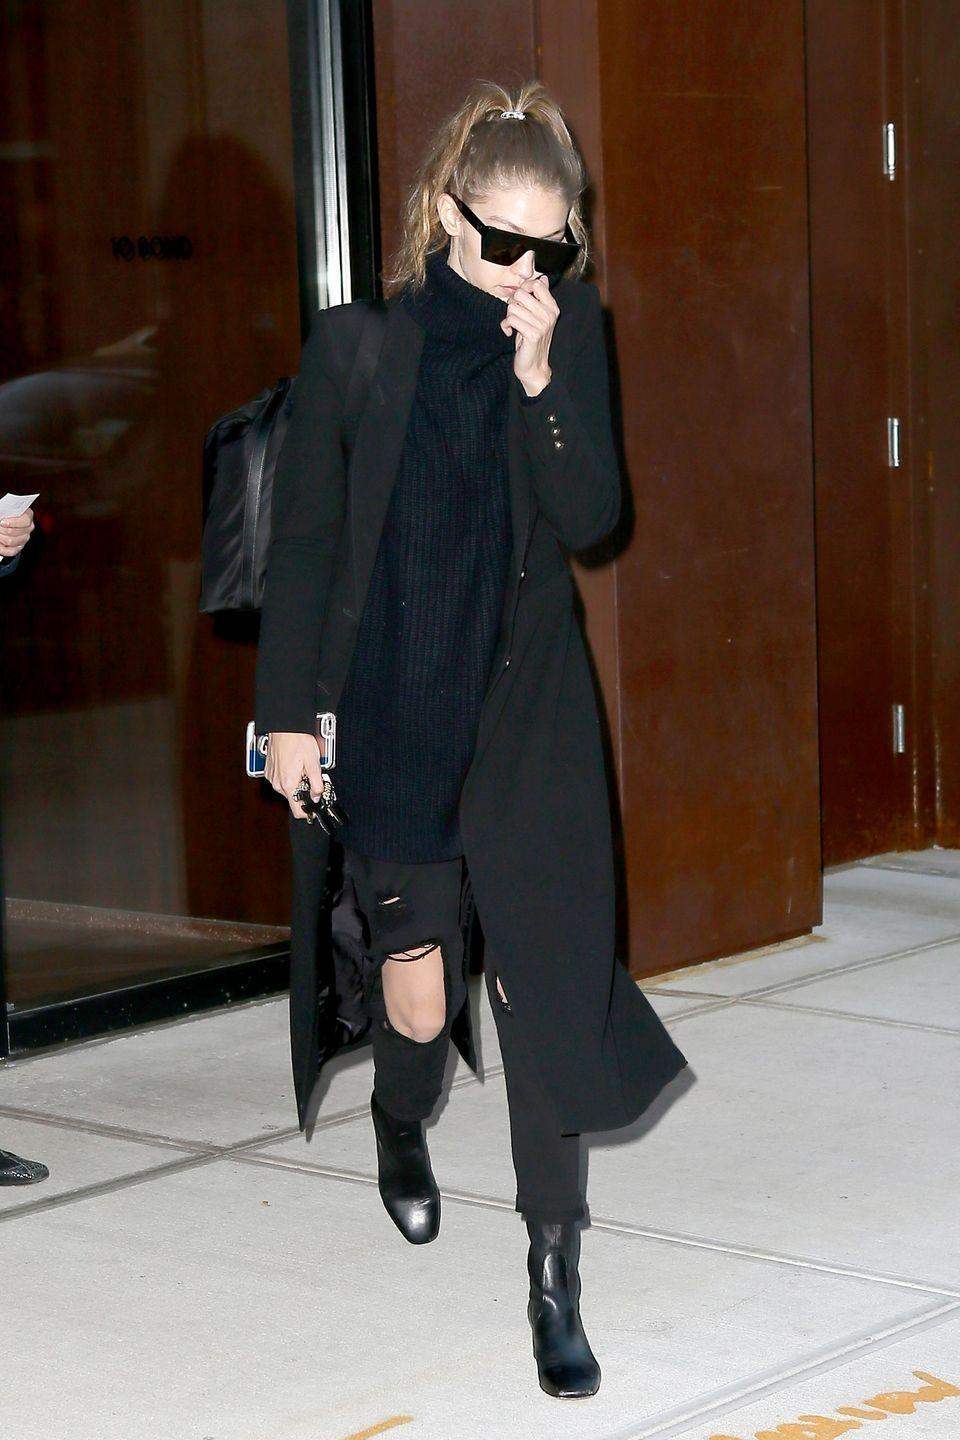 """<p>Heading to New York's JFK airport, Gigi wore a black turtleneck with distressed <a href=""""http://www.7forallmankind.com/josefina-with-open-holes-in-black-/d/13158C26506?CategoryId=3310"""" rel=""""nofollow noopener"""" target=""""_blank"""" data-ylk=""""slk:7 For All Mankind"""" class=""""link rapid-noclick-resp"""">7 For All Mankind</a> jeans, a black Smythe coat and Sandro ankle boots. </p>"""